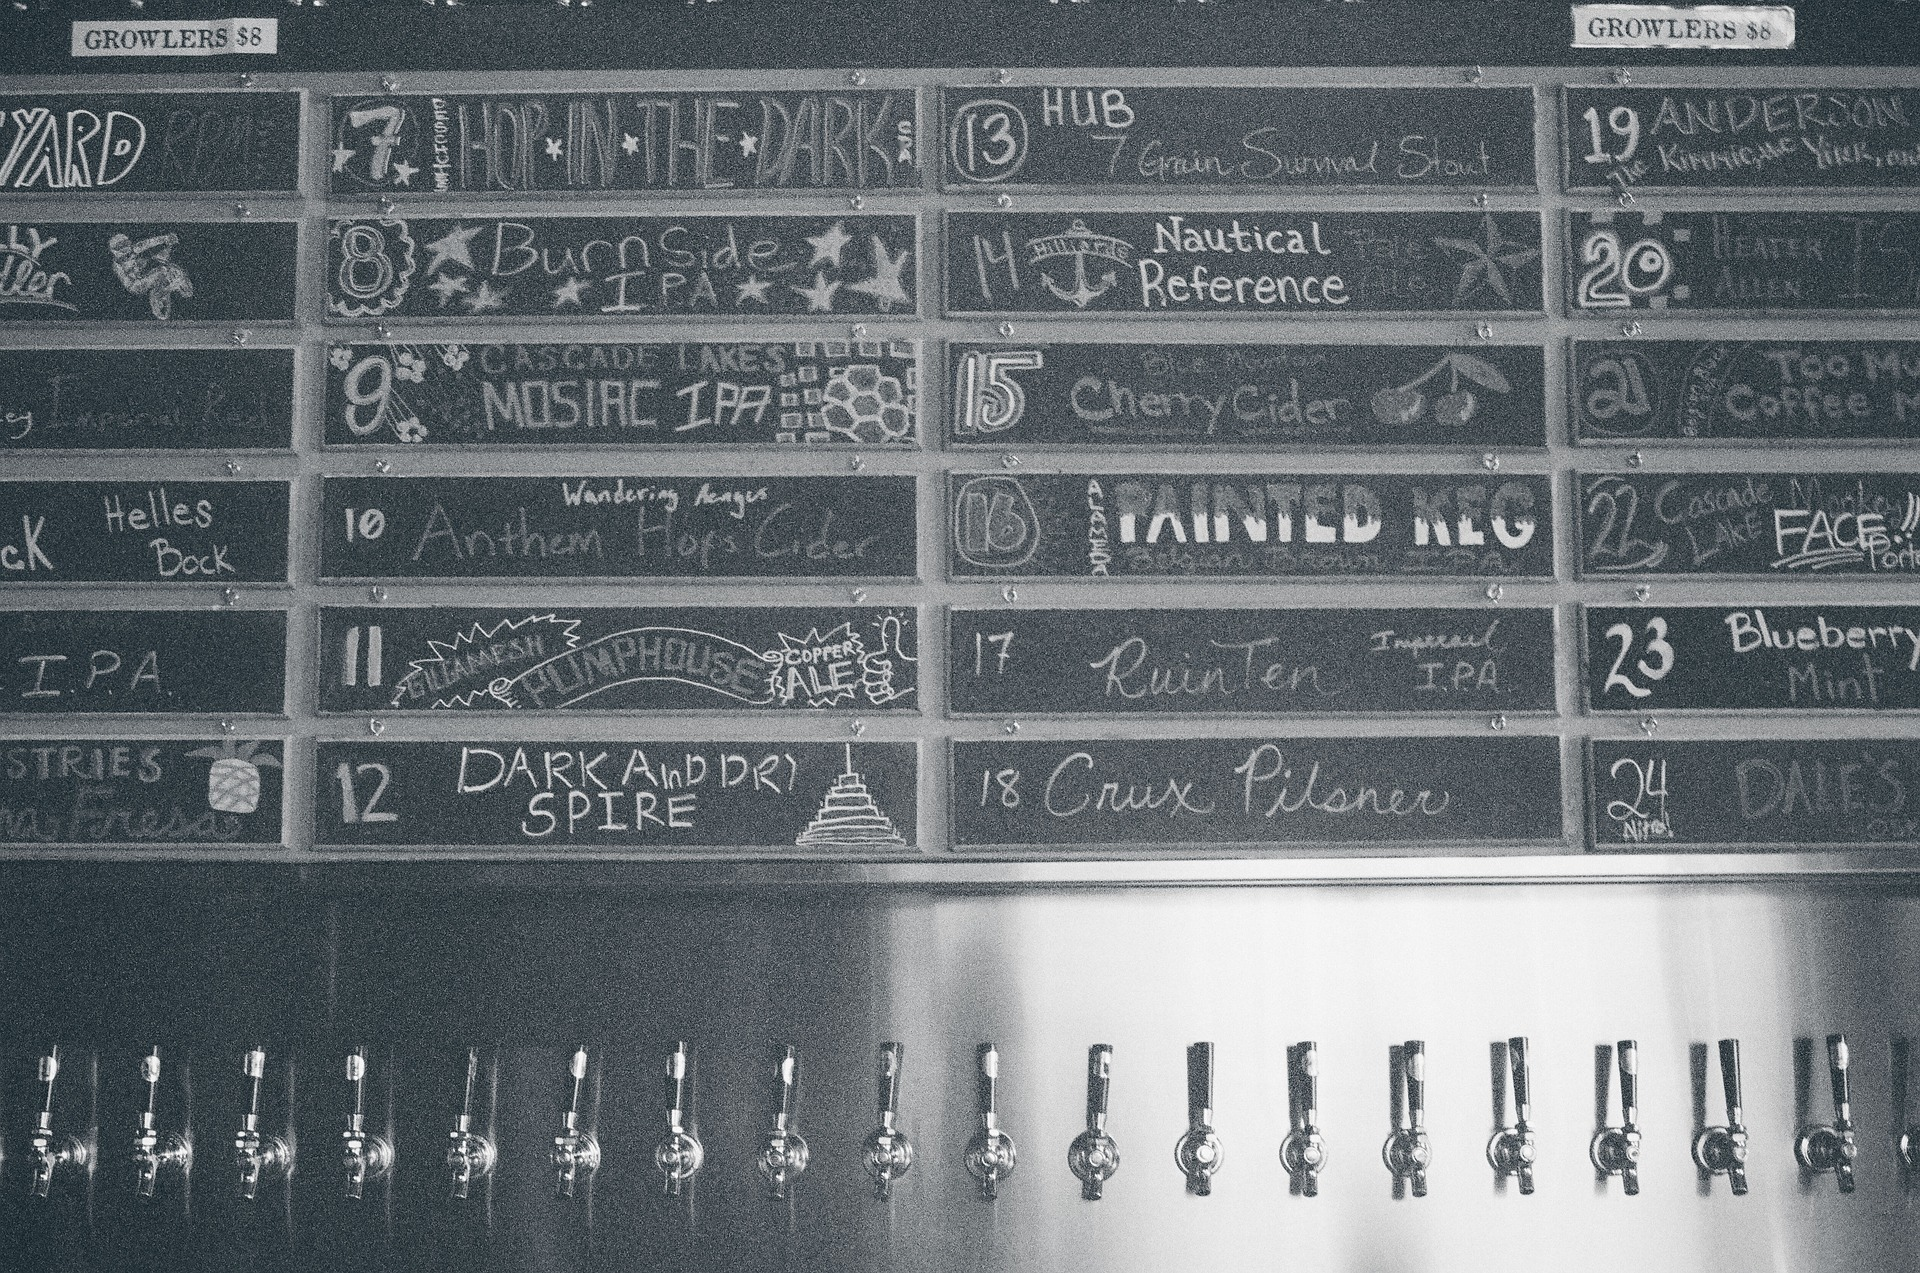 Brewery beer list